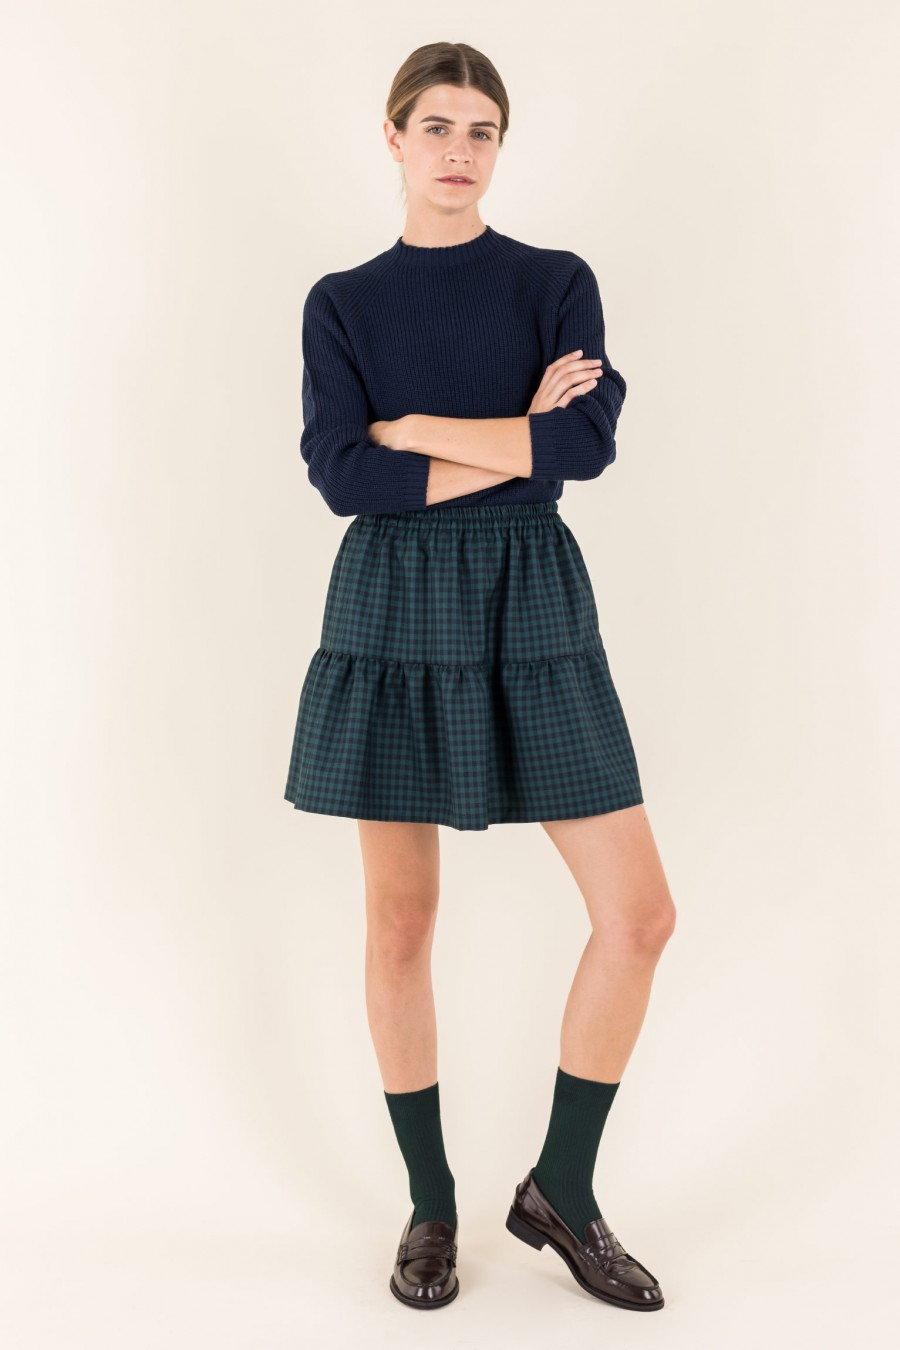 Green and blue checked skirt